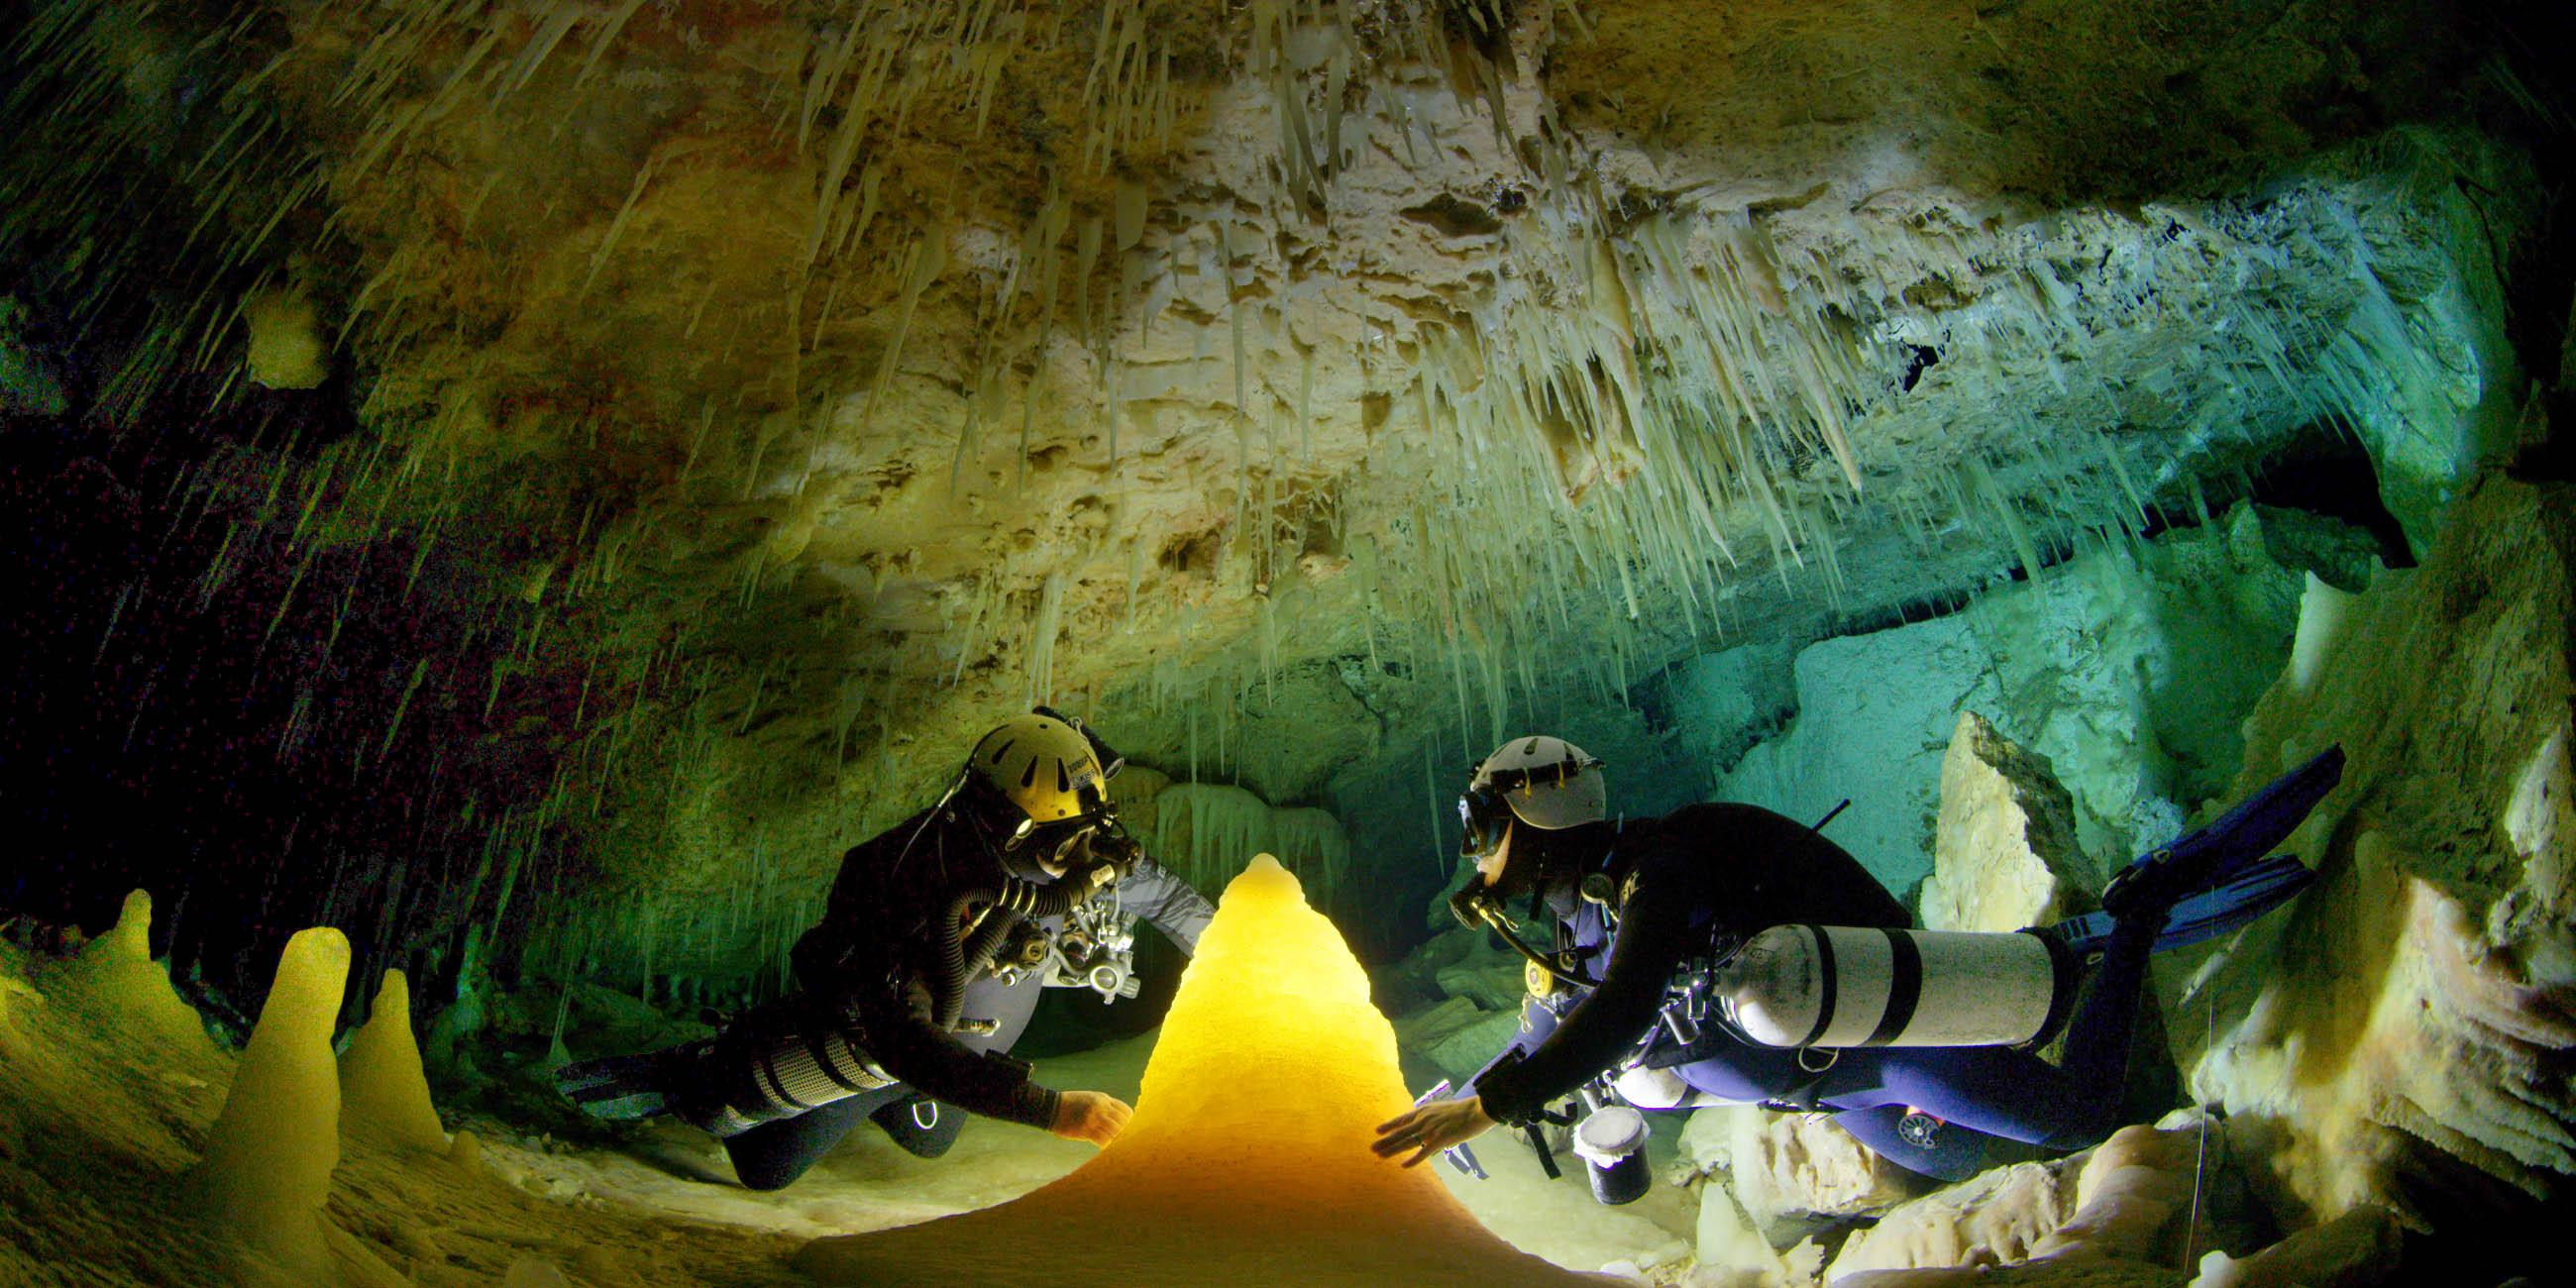 Underwater Cave with Divers Illuminating a Stalagmite